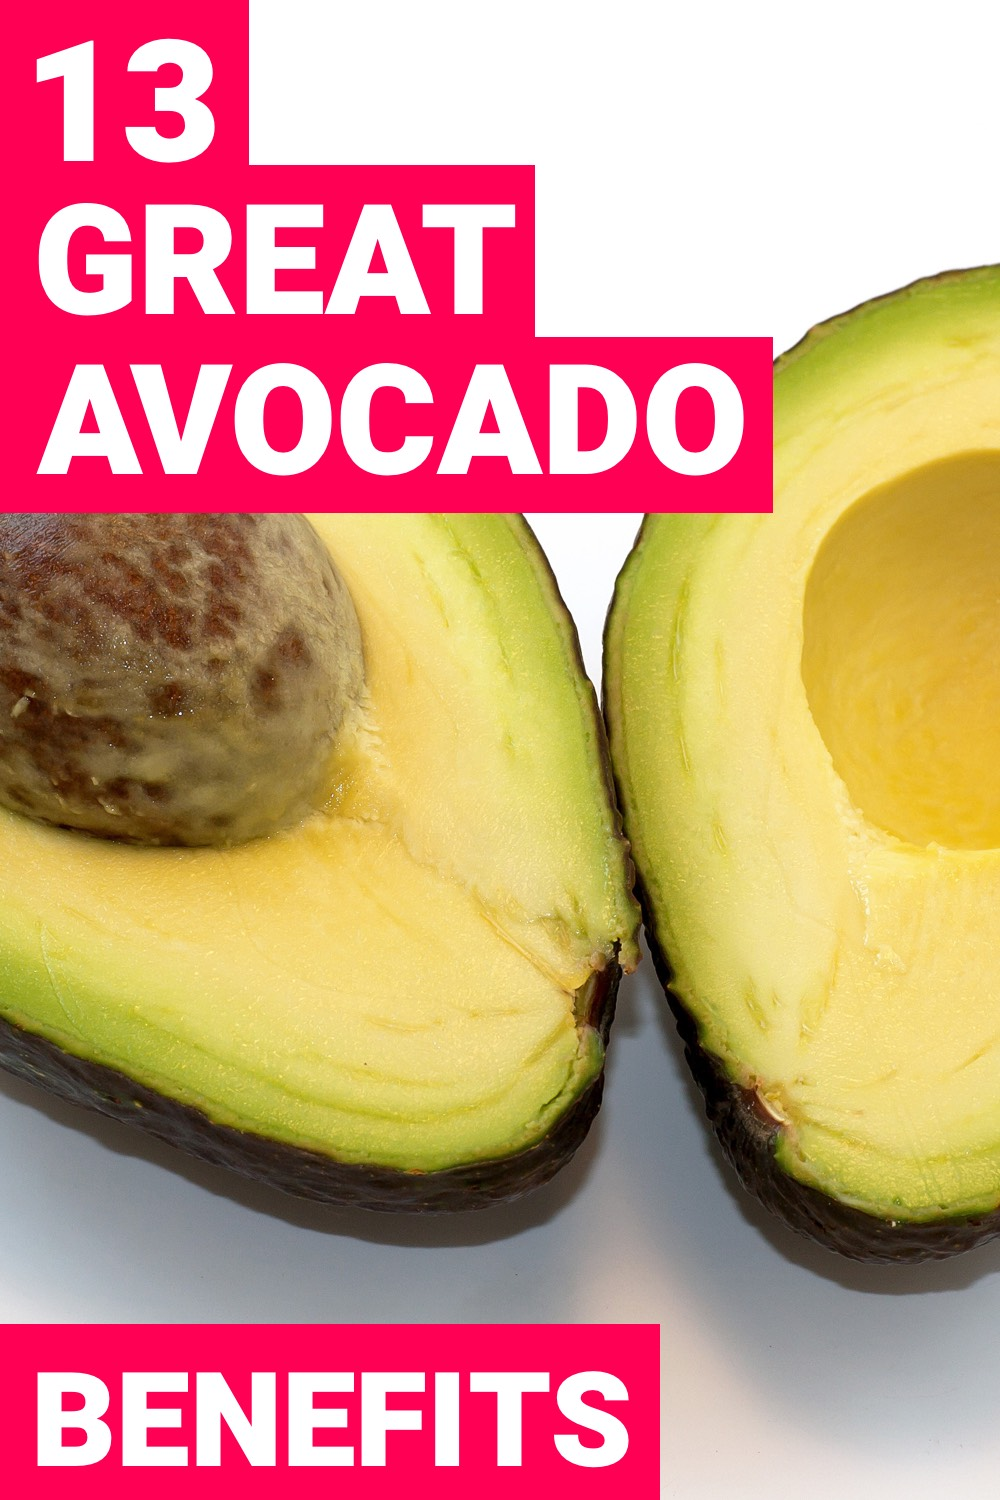 The health benefits of avocados shouldn't be overlooked. It's a superfood for a reason. Here are 13 health benefits of avocados.